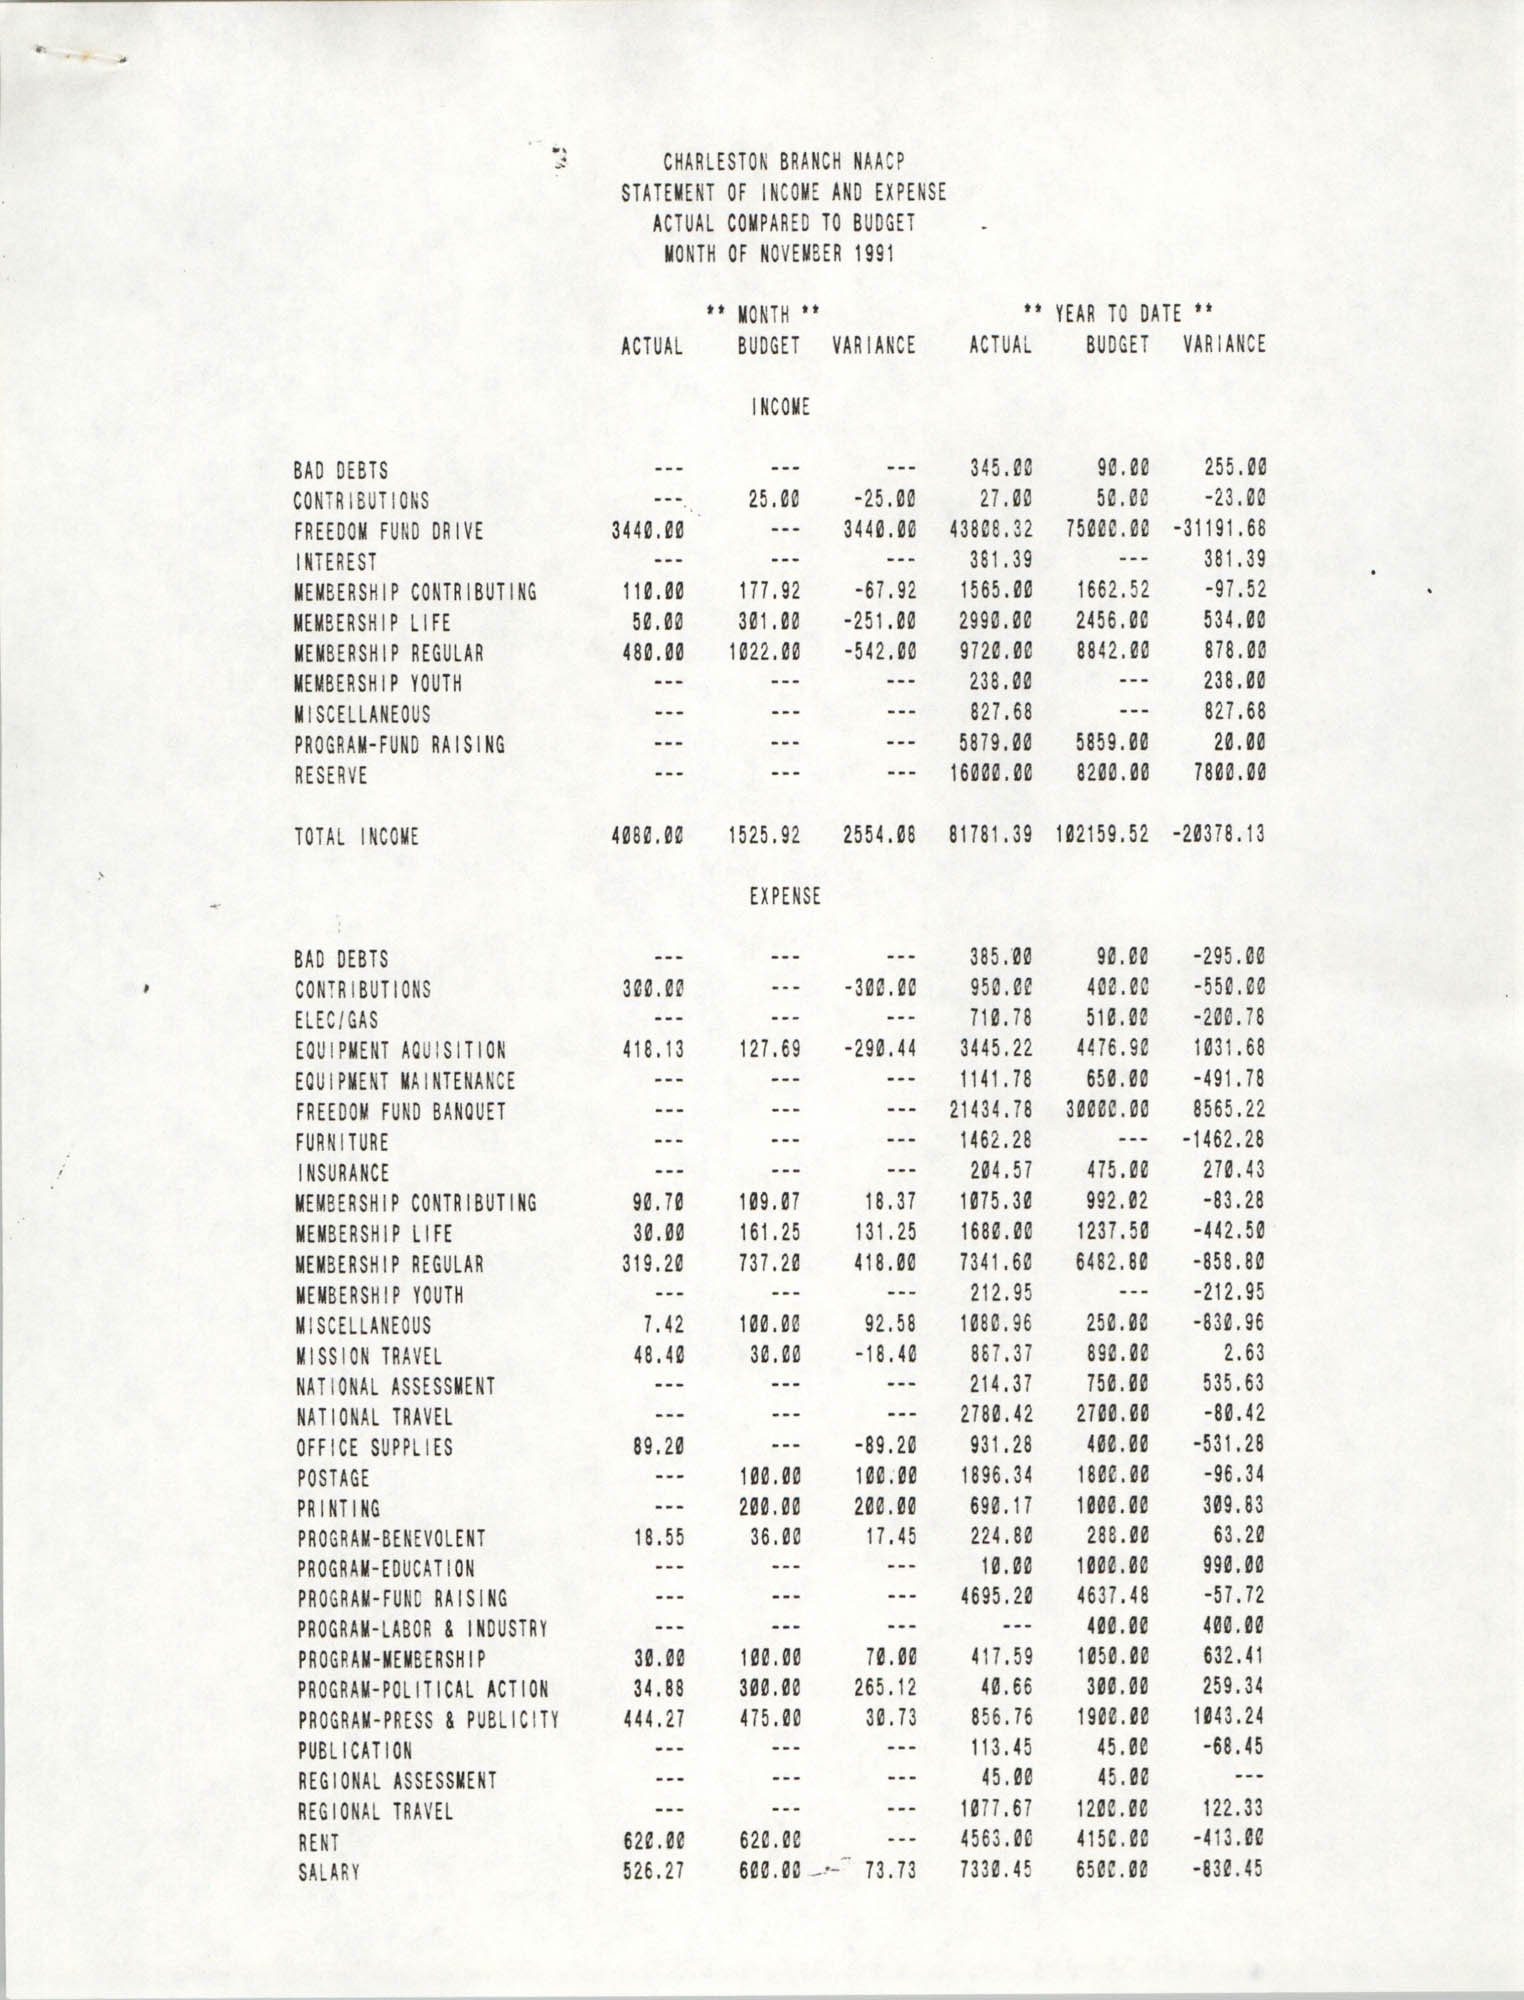 Charleston Branch of the NAACP Statement of Income and Expense, November 1991, Page 1